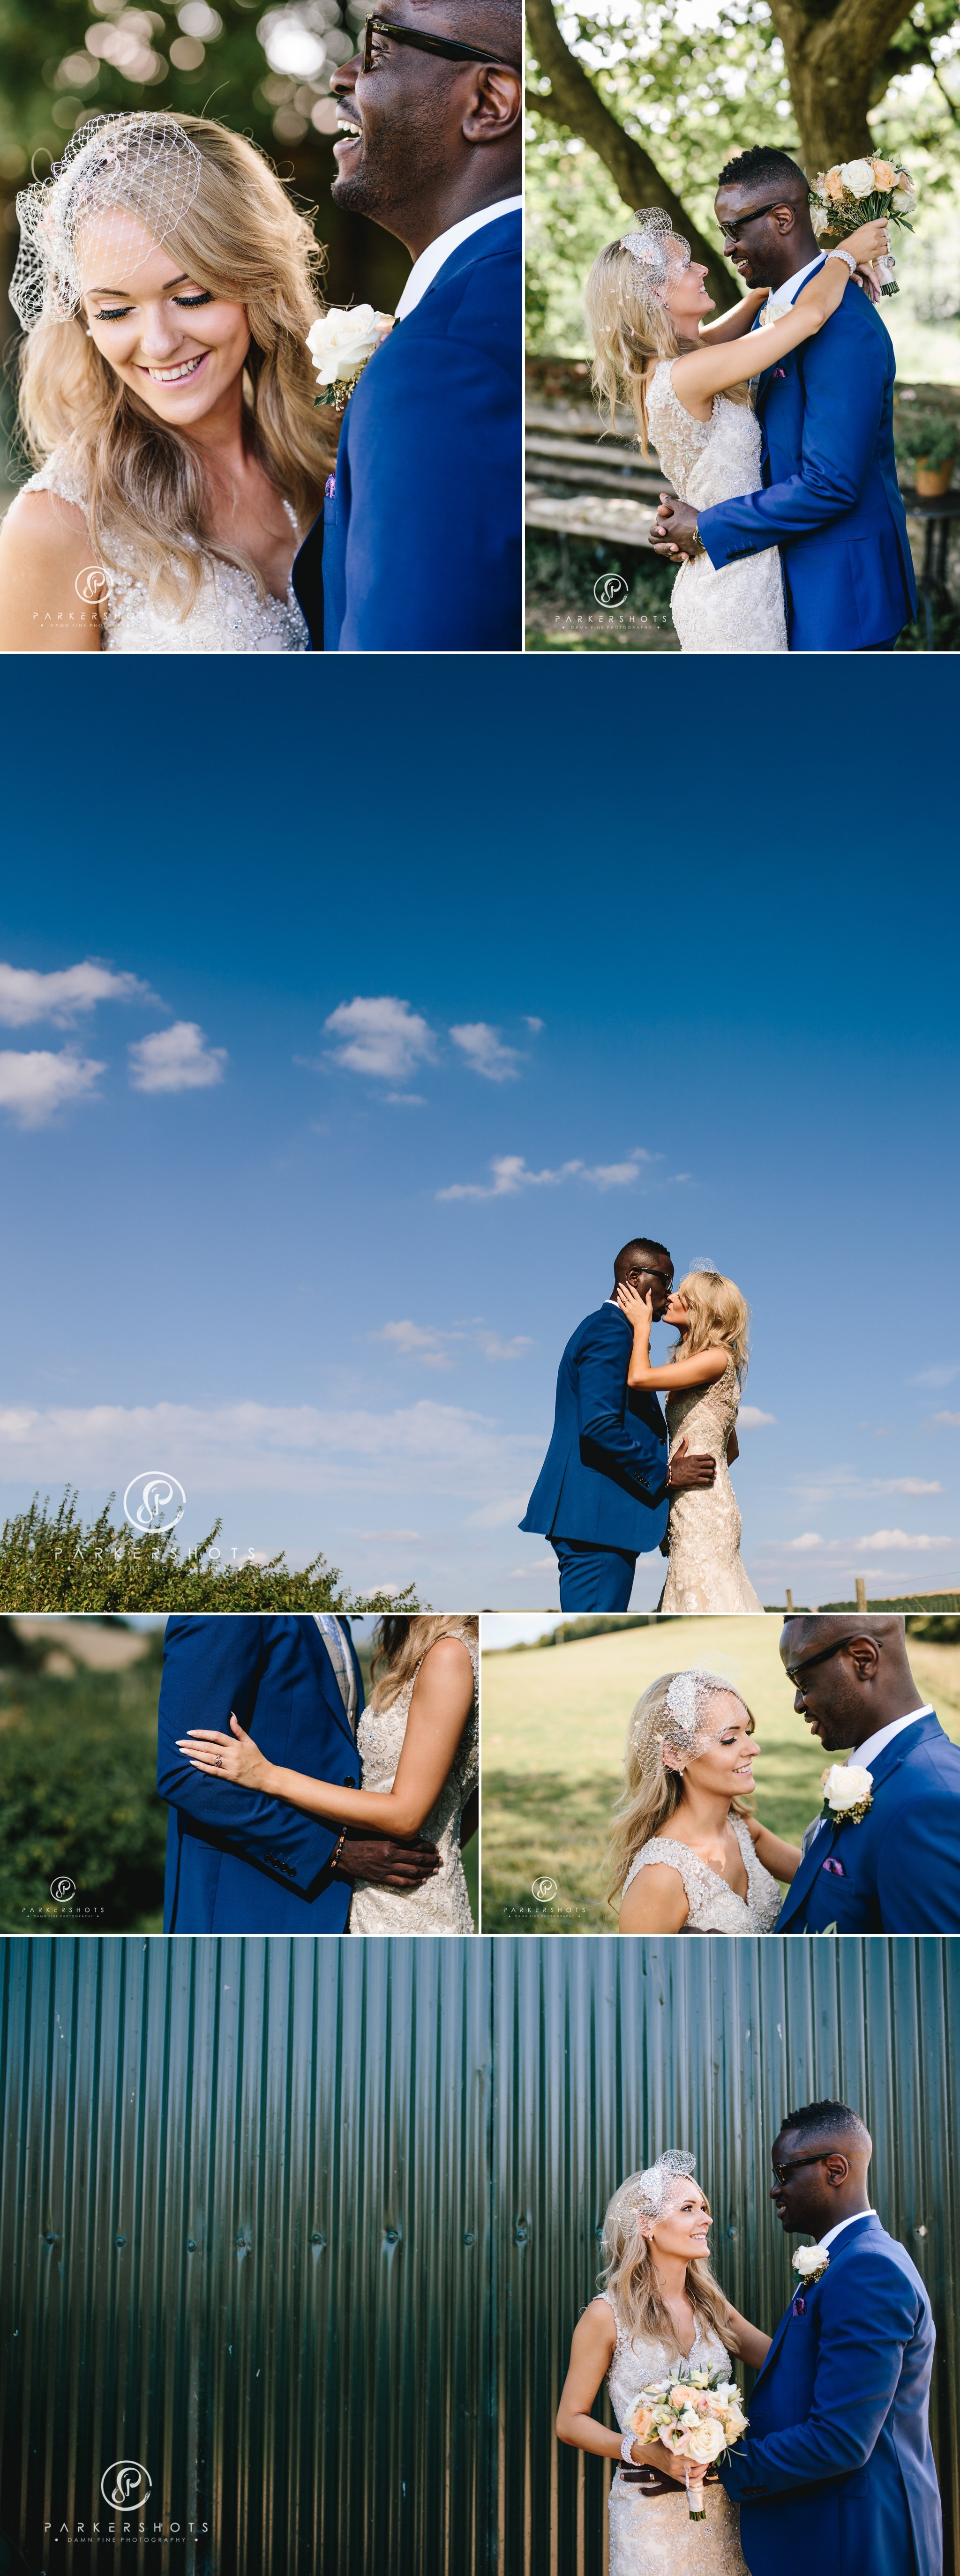 Amazing wedding photograhy by Sussex Wedding Photographer